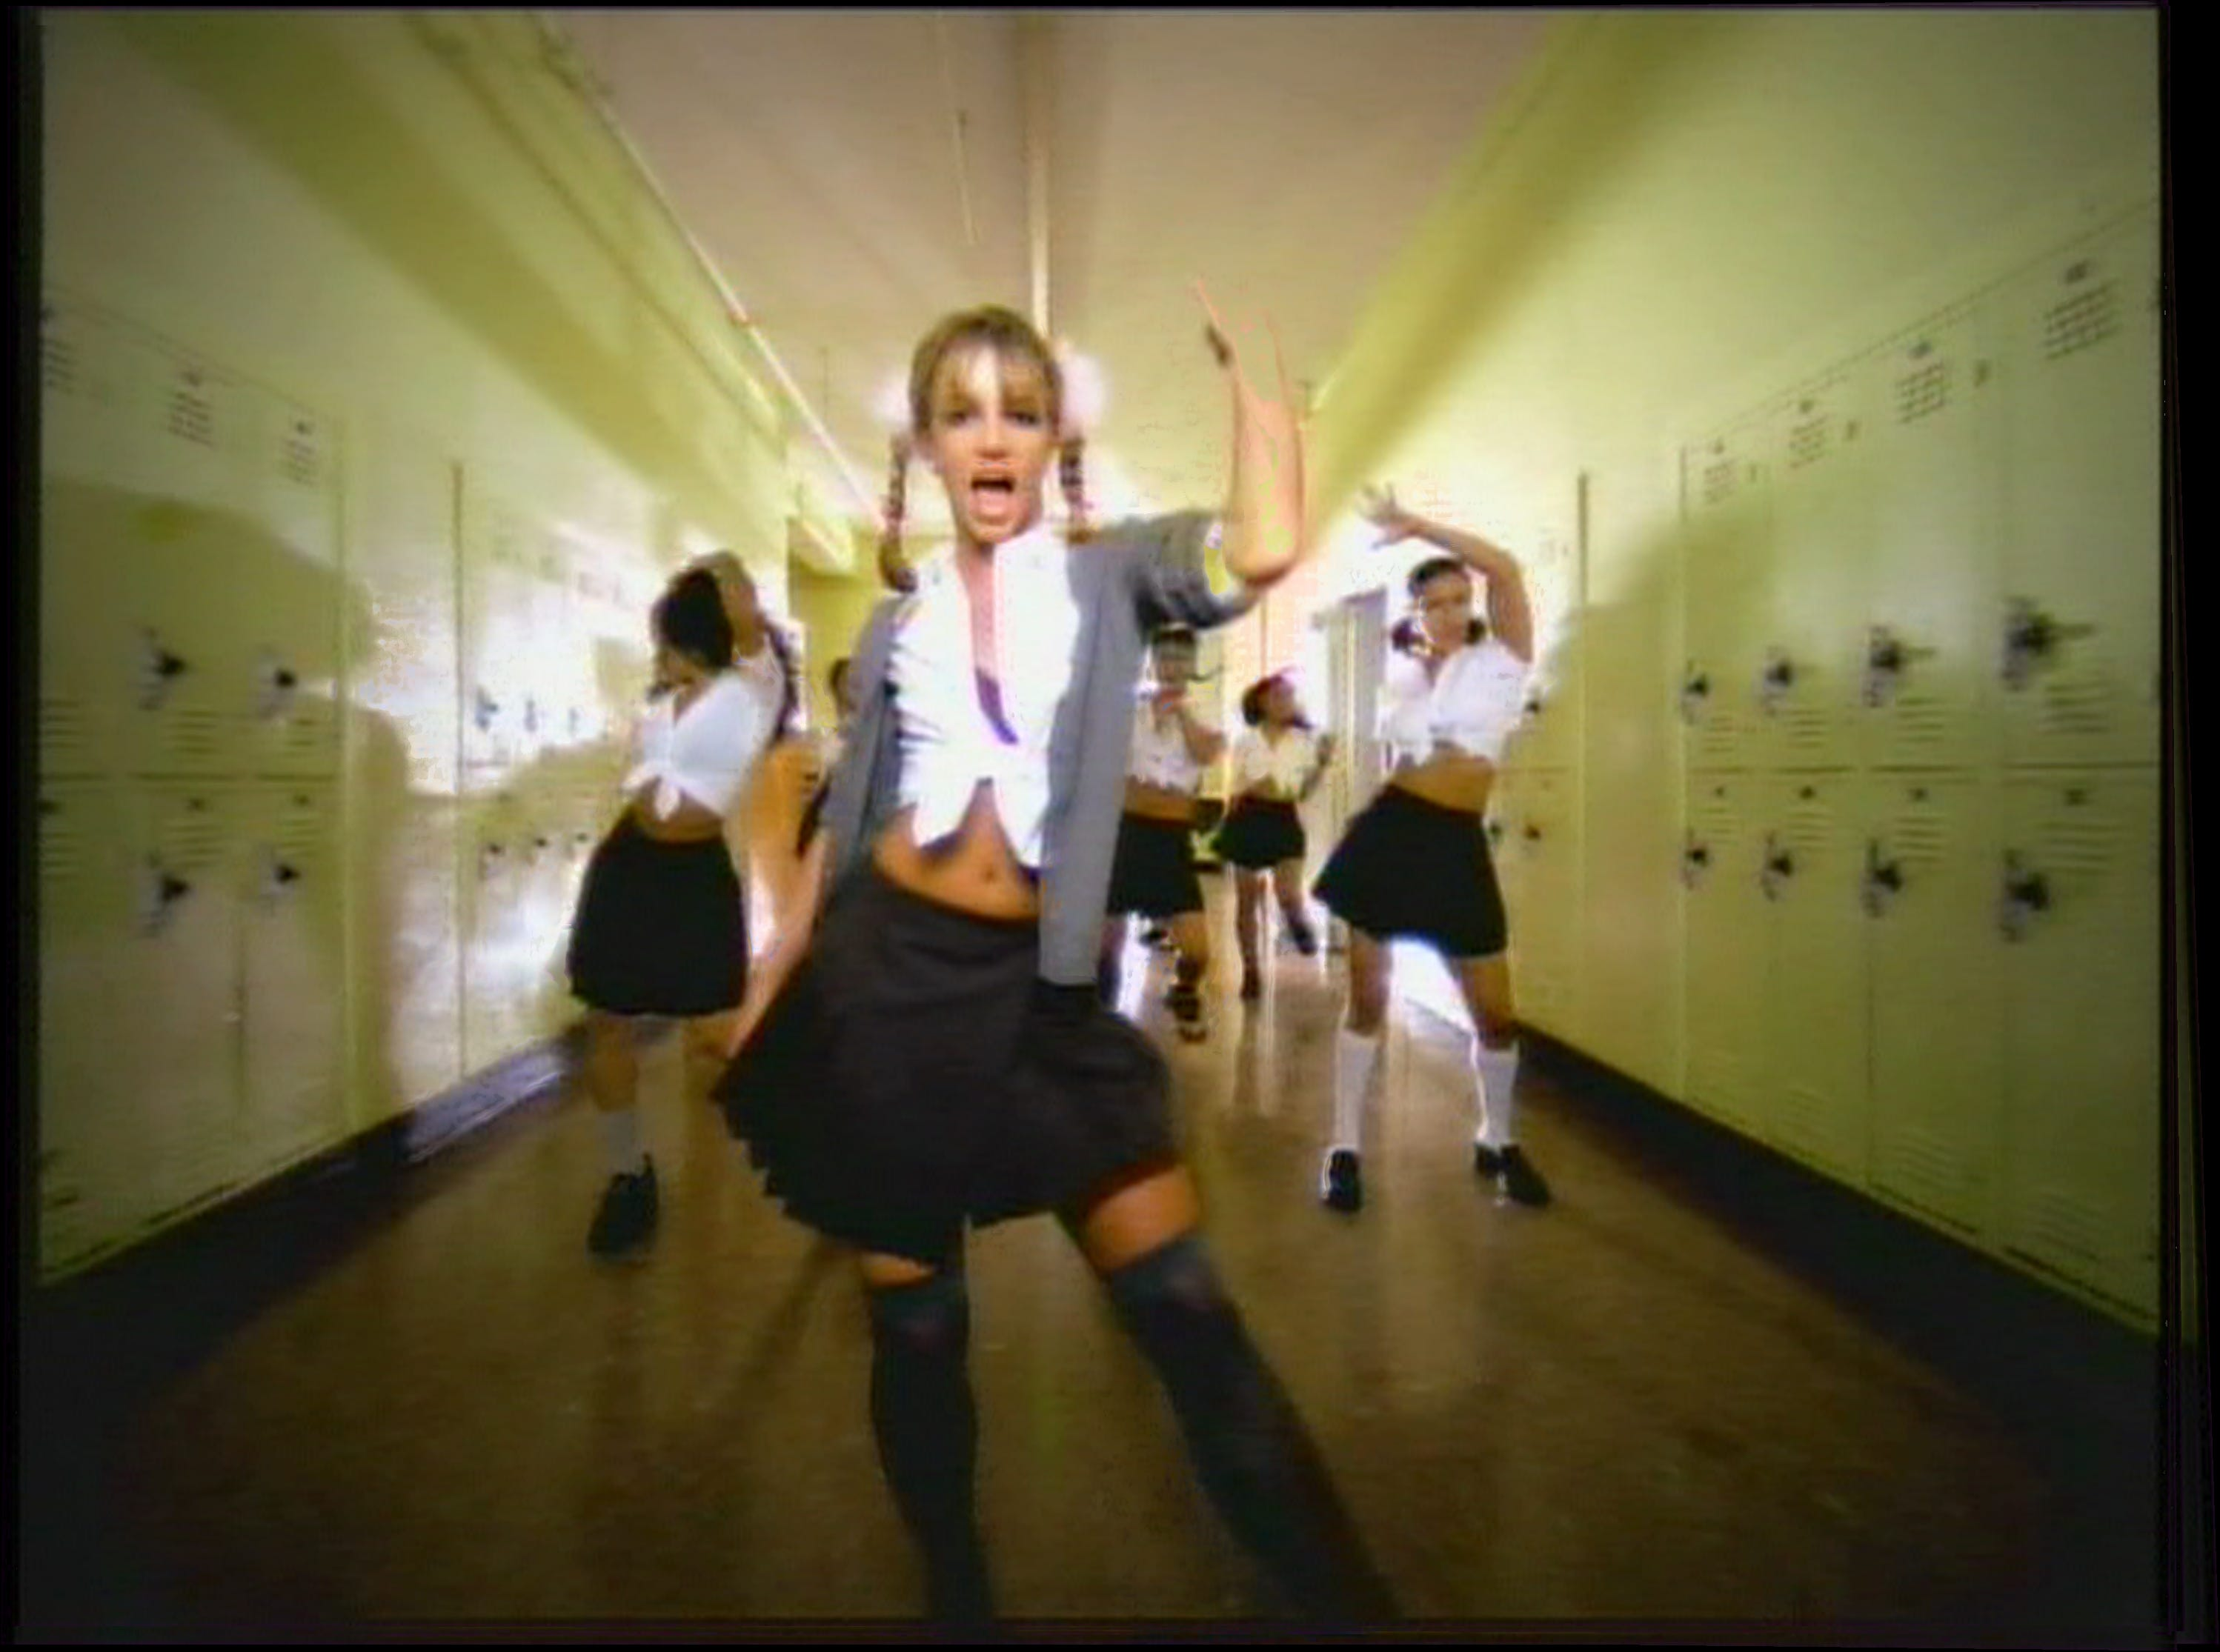 Britney Spears' '...Baby One More Time,' is turning 20. See Britney's history of hits.